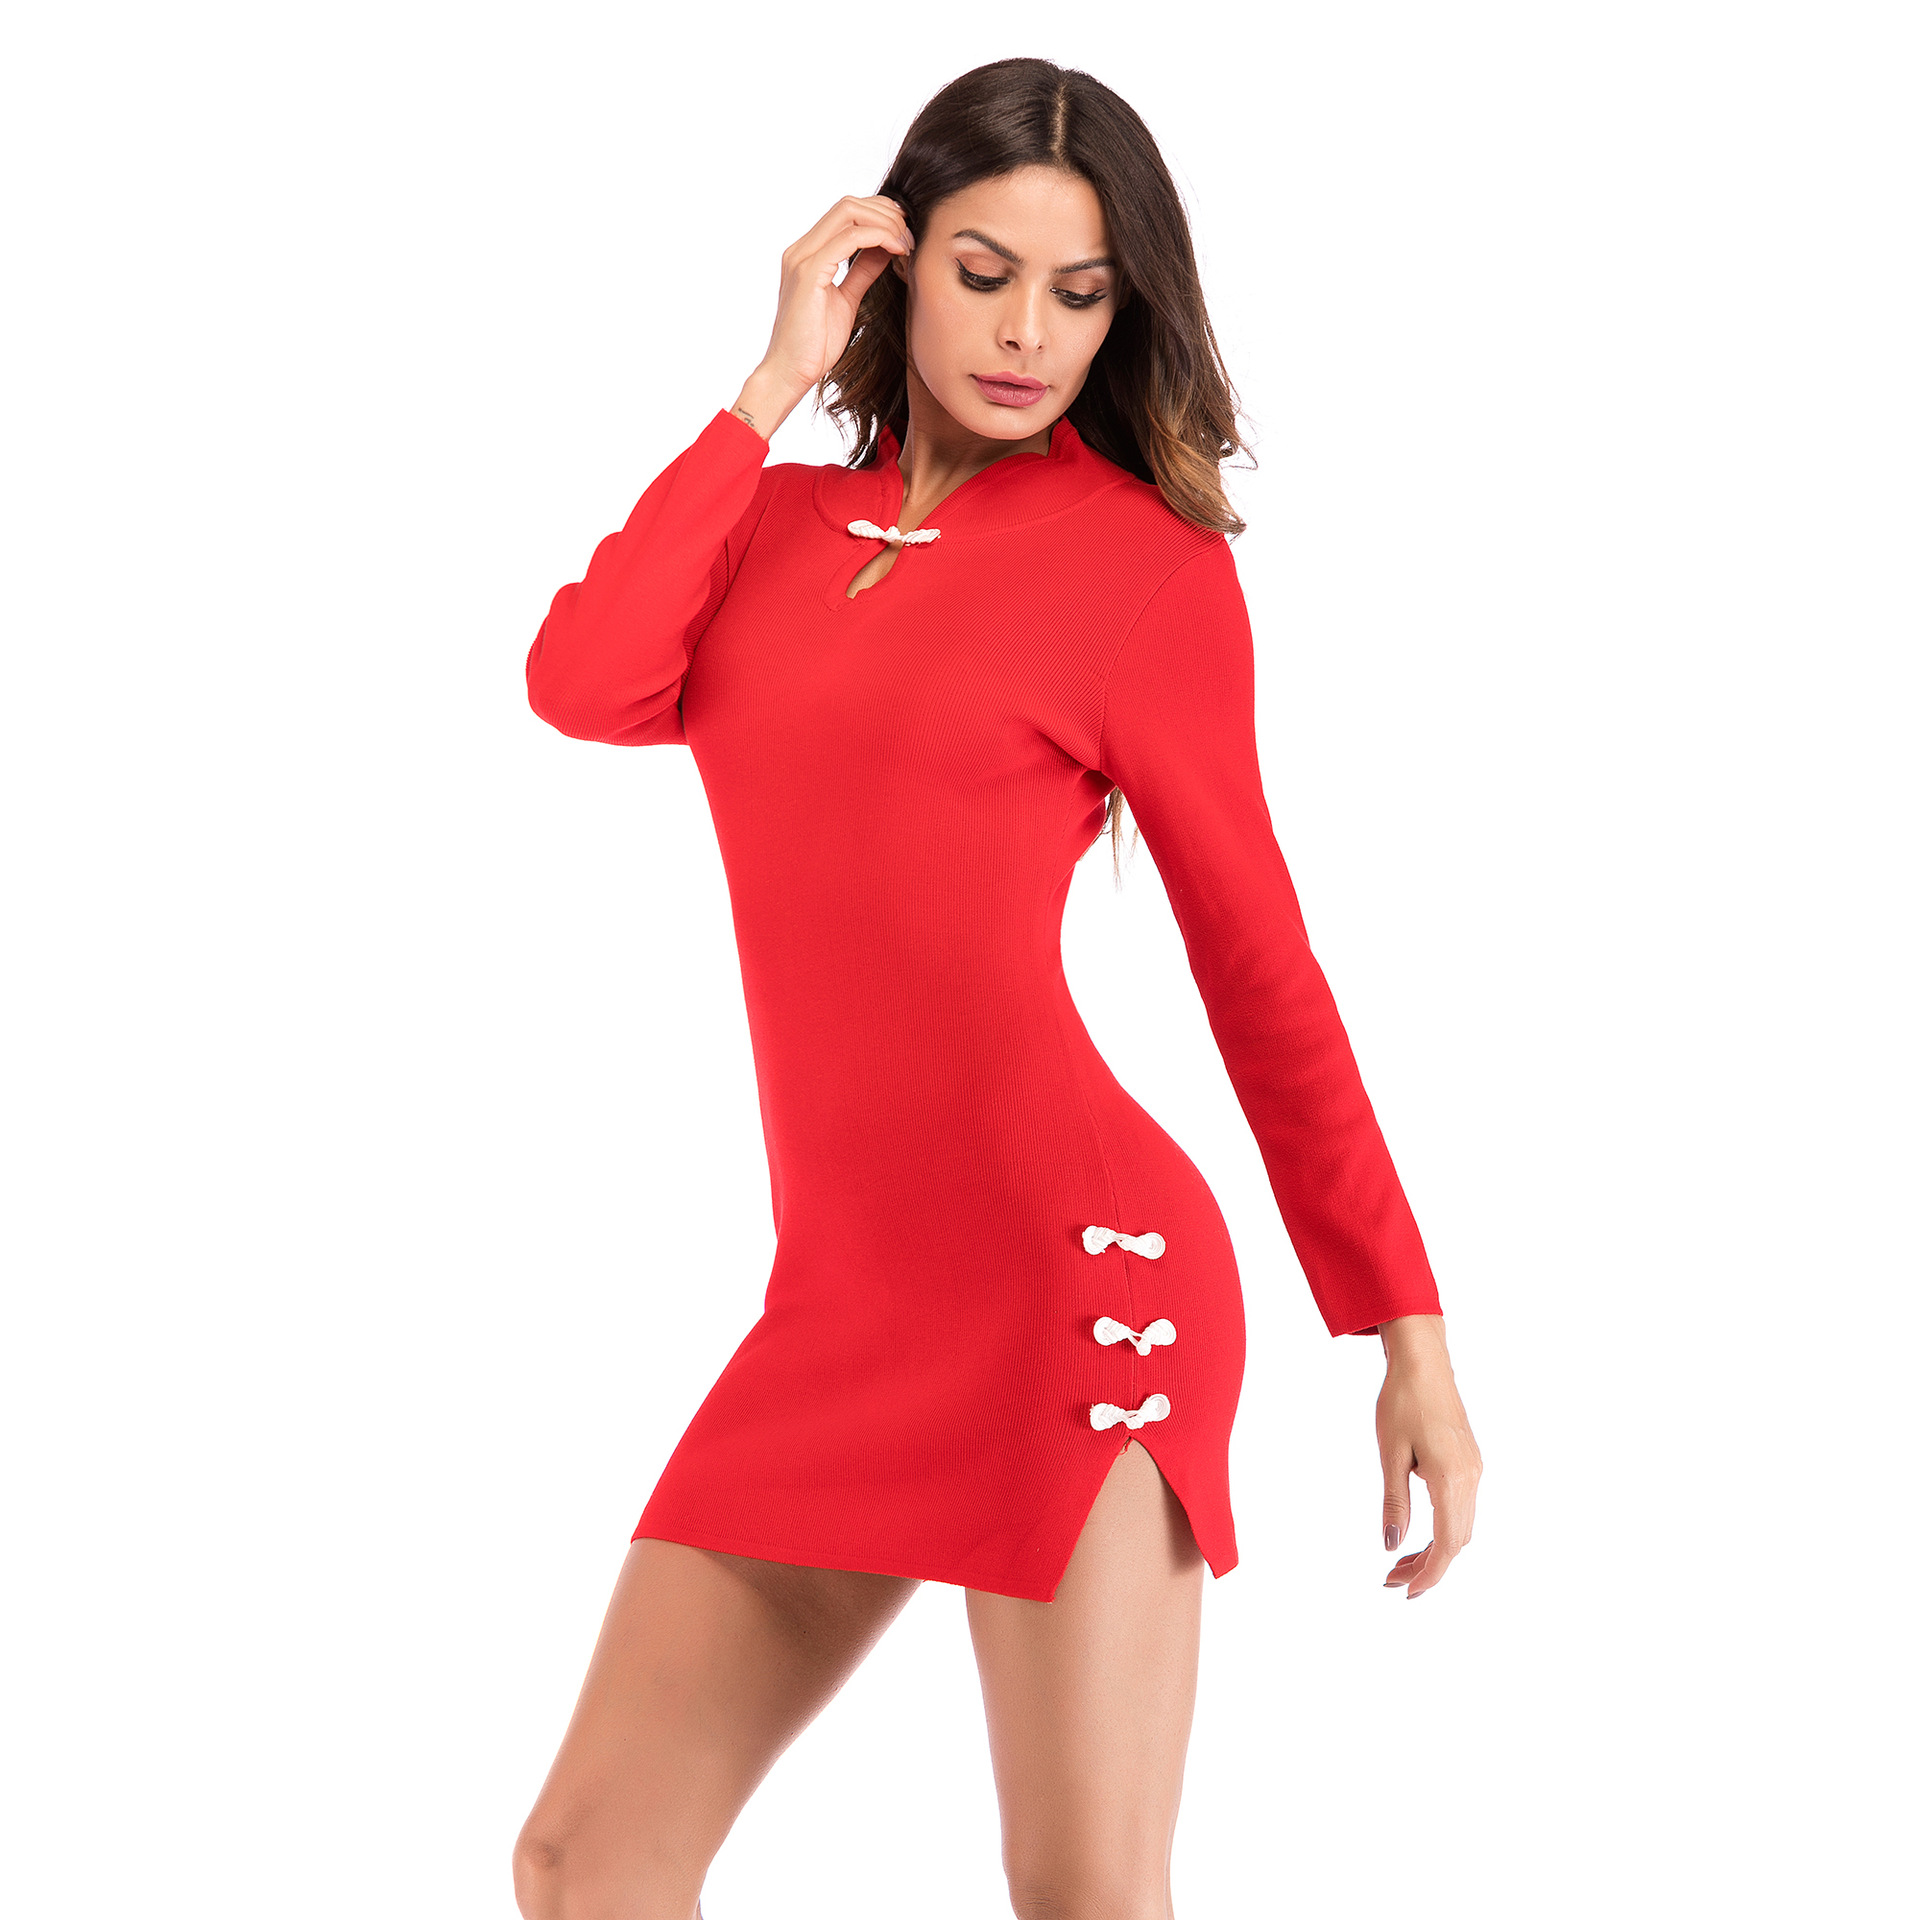 e7067d3579 ... Winter Chinese Style Qipao Sexy Cheongsam Clasp Split Knit Mini Dress  for Women Lady Club Party ...